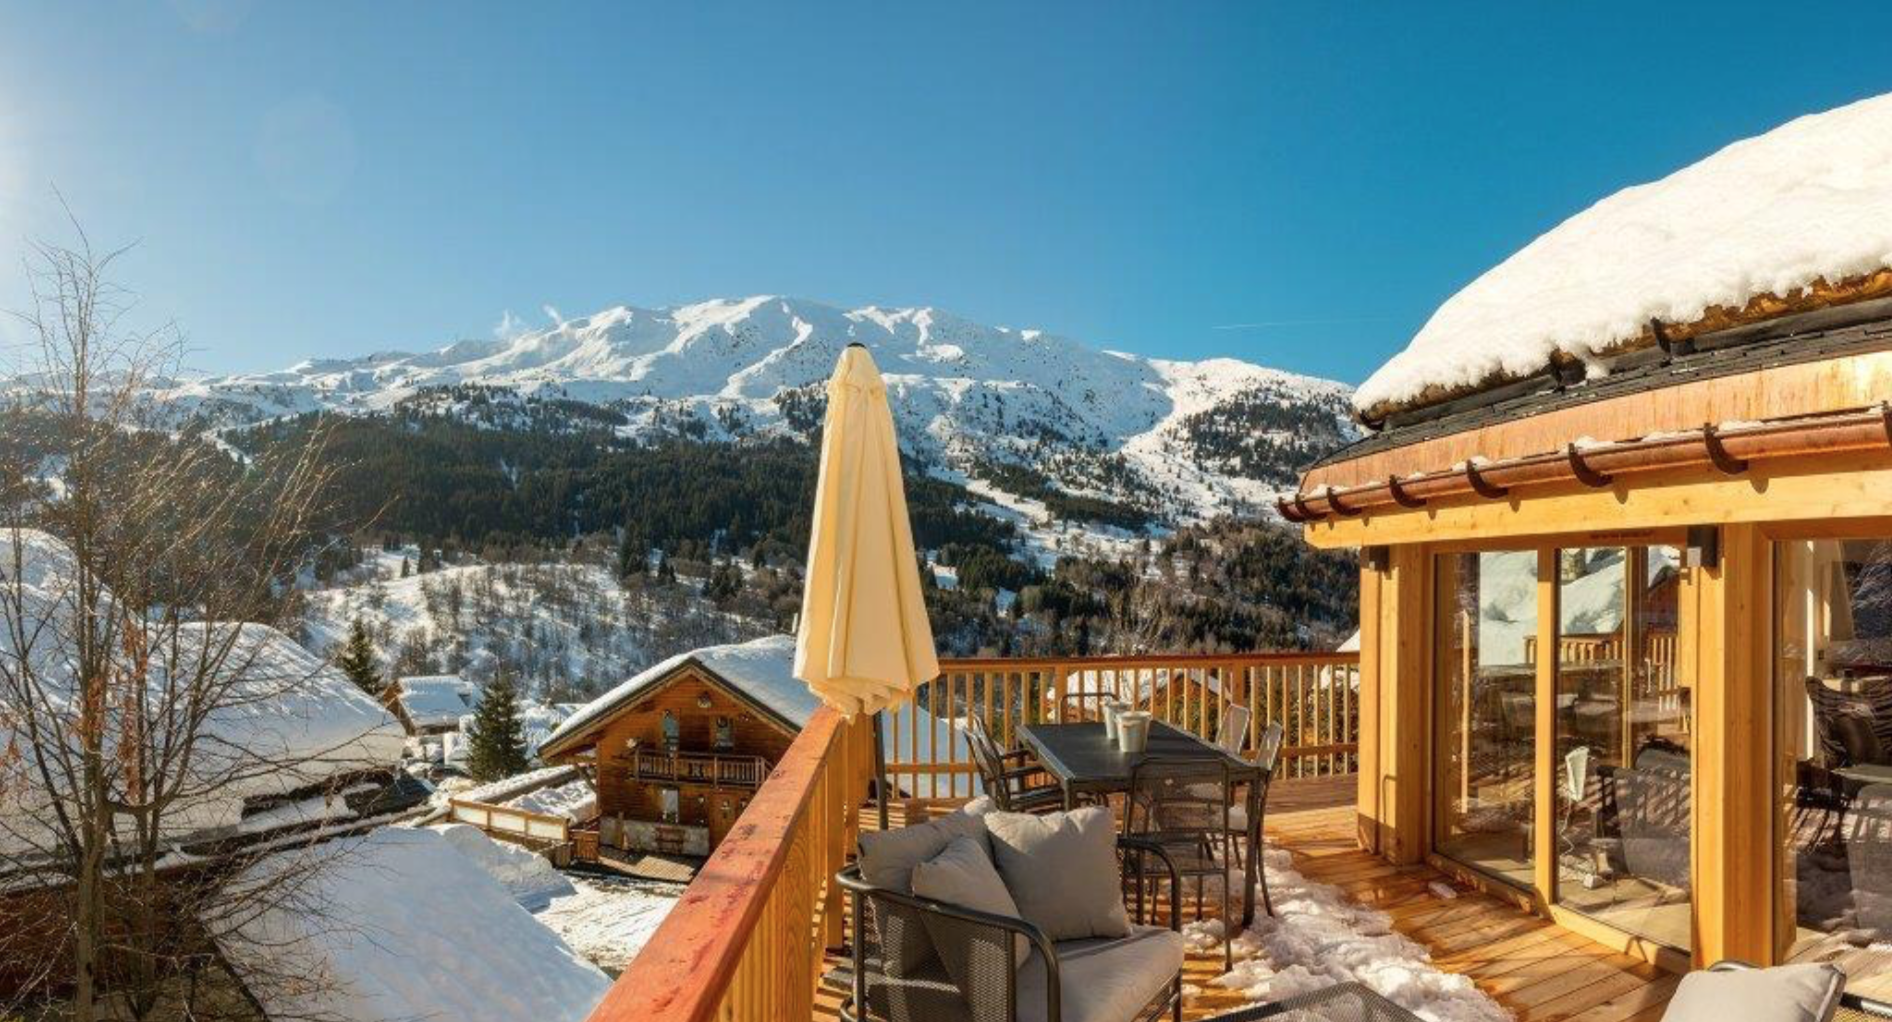 6 Bedroom Meribel Chalet